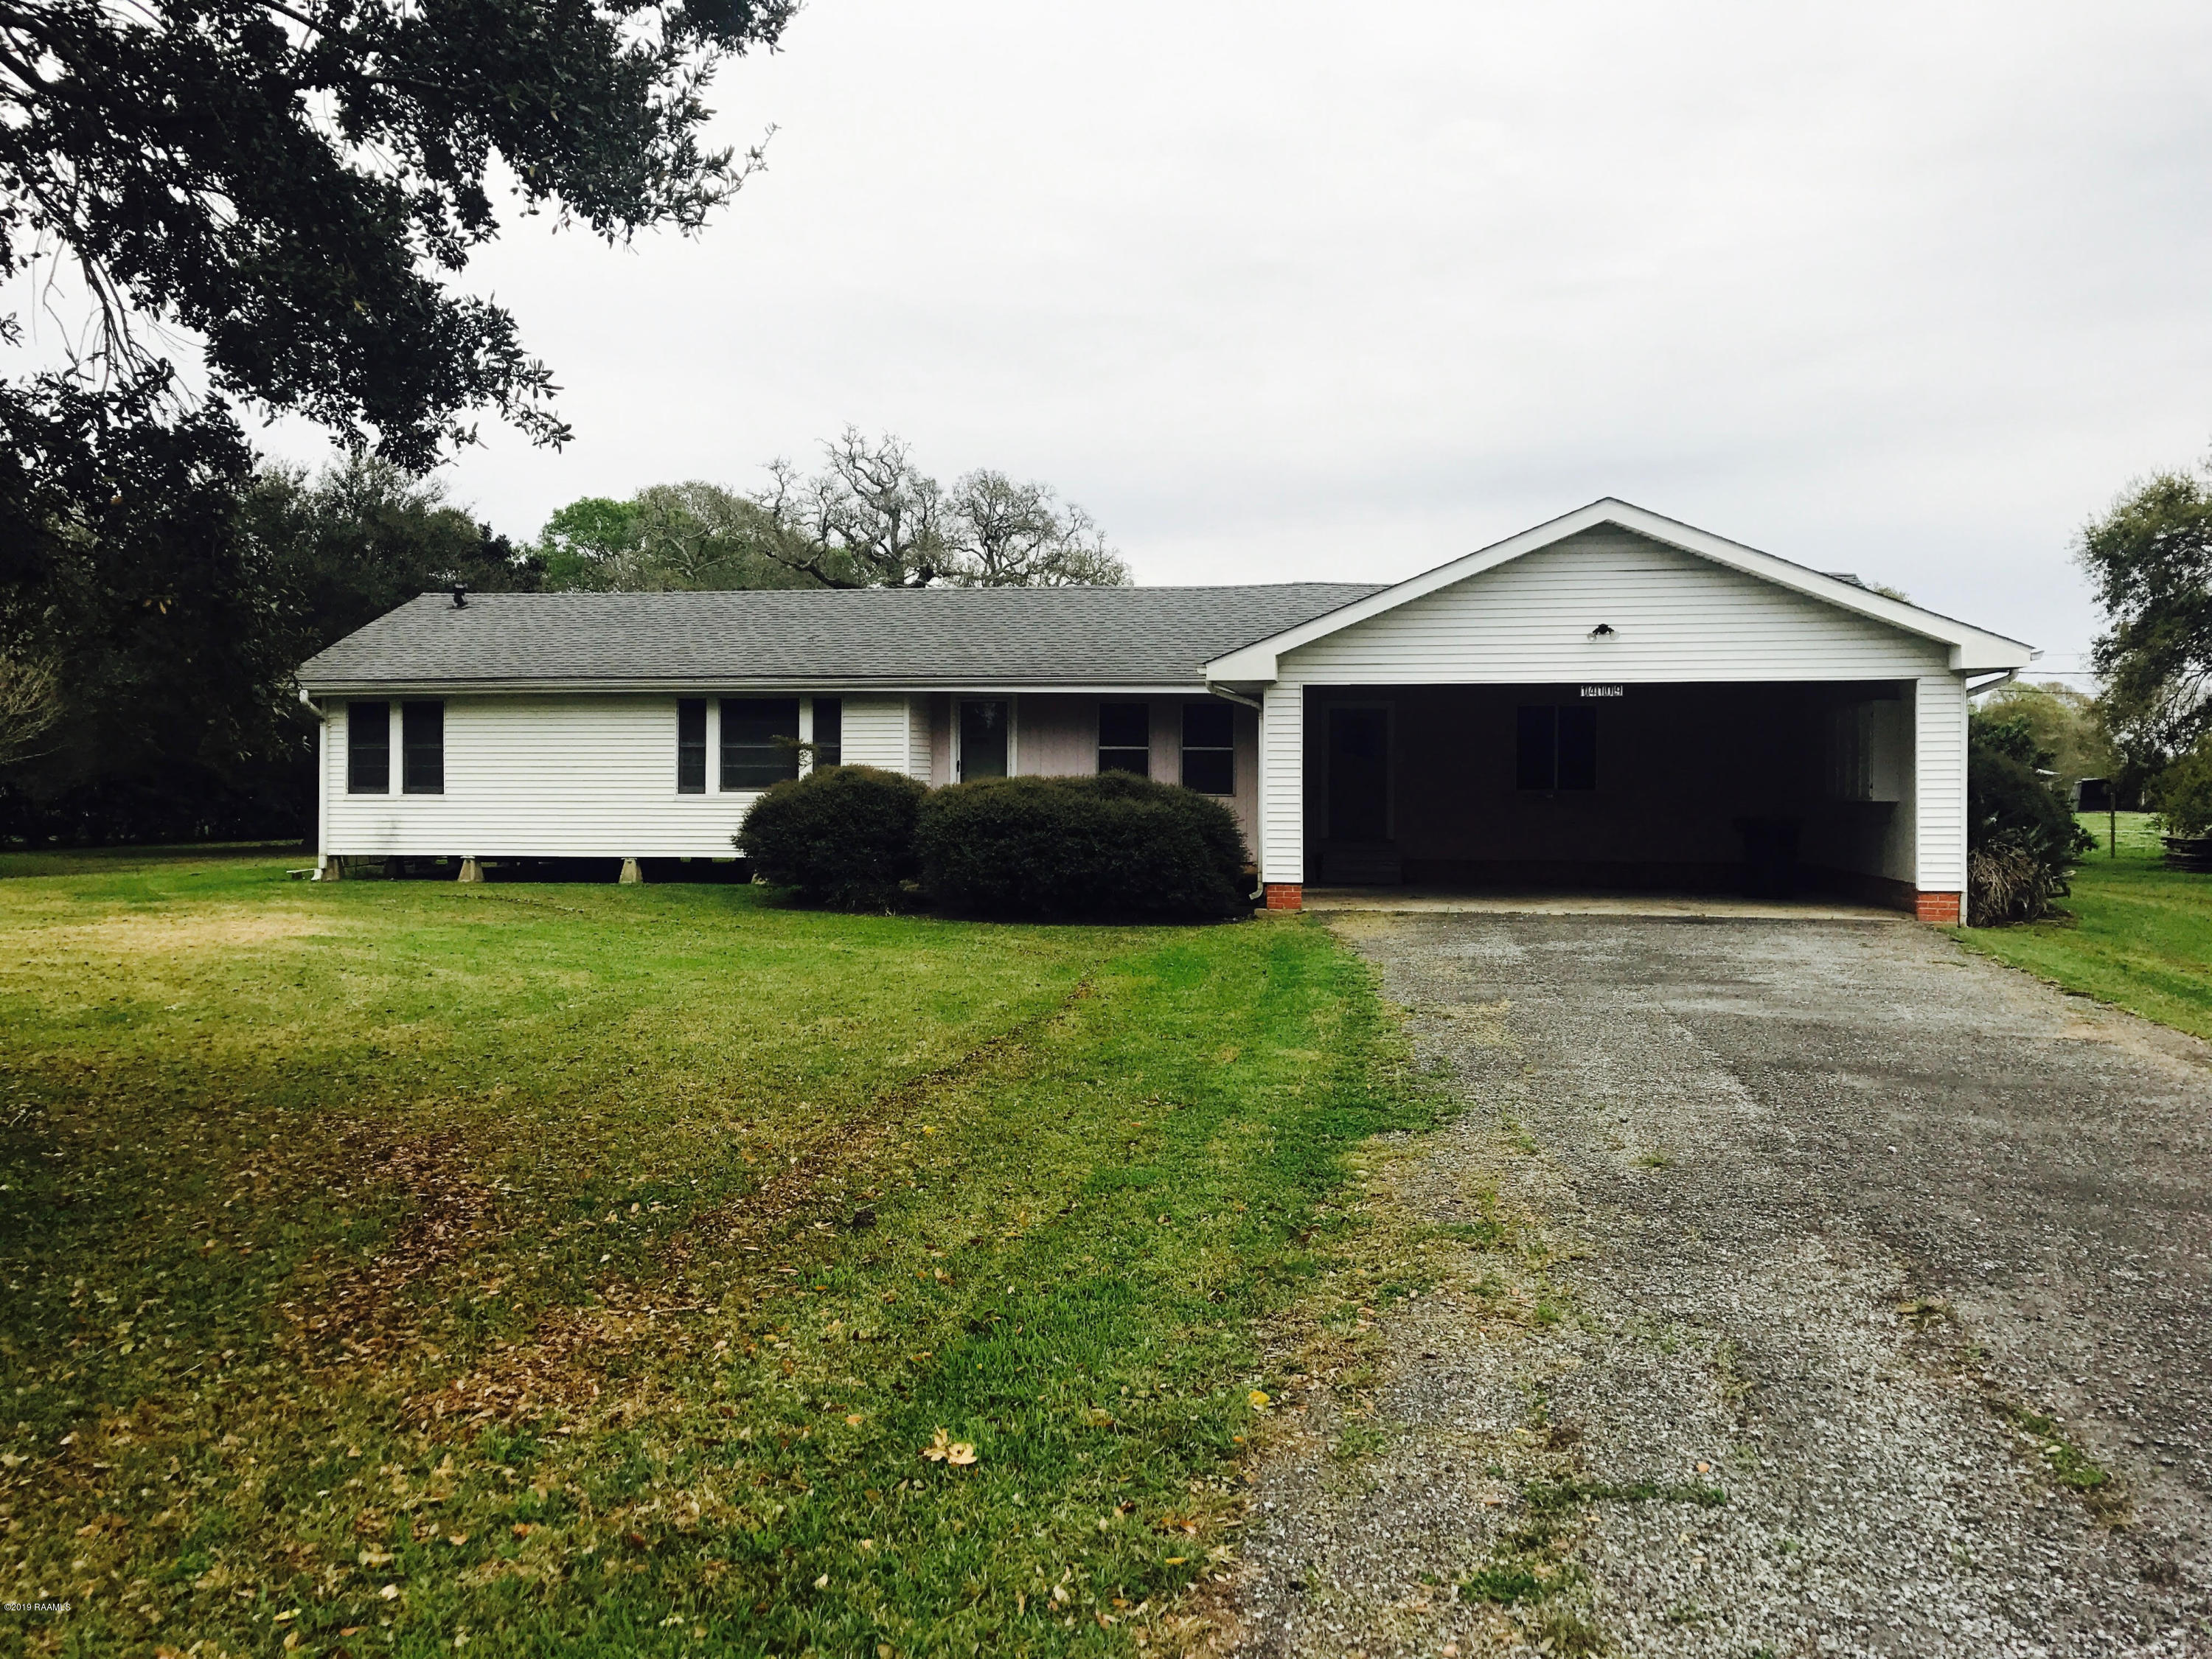 14109 Cypress, Abbeville, LA 70510 Photo #1